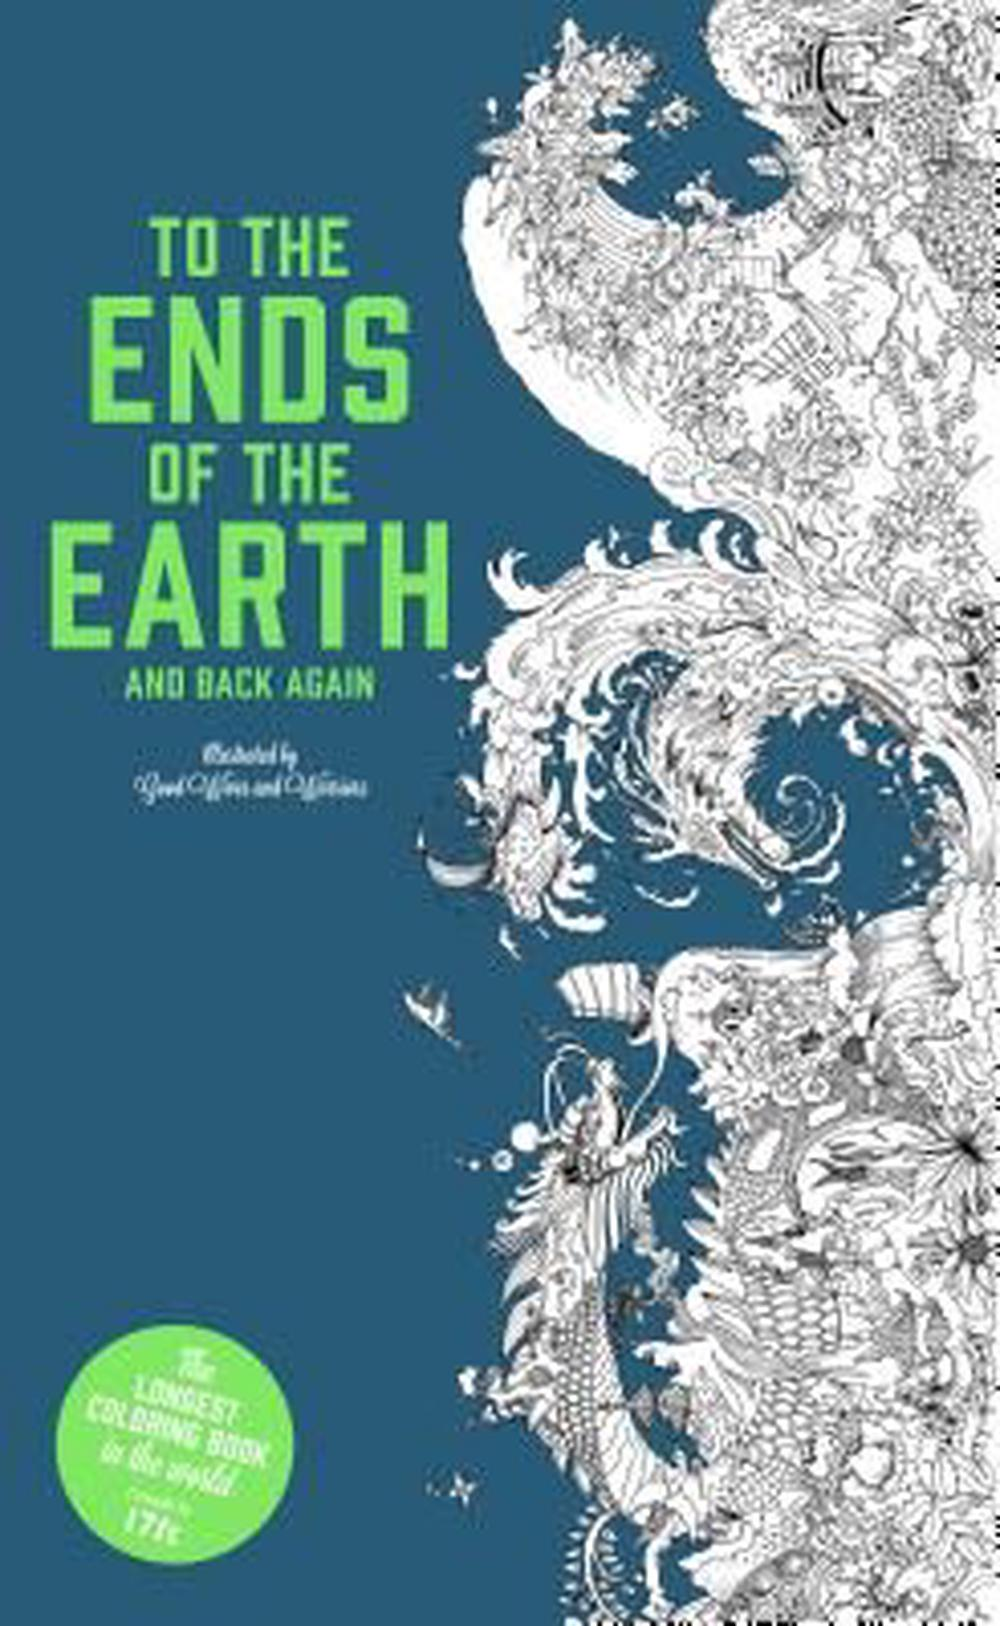 To the Ends of the Earth and Back AgainThe Longest Coloring Book in the World